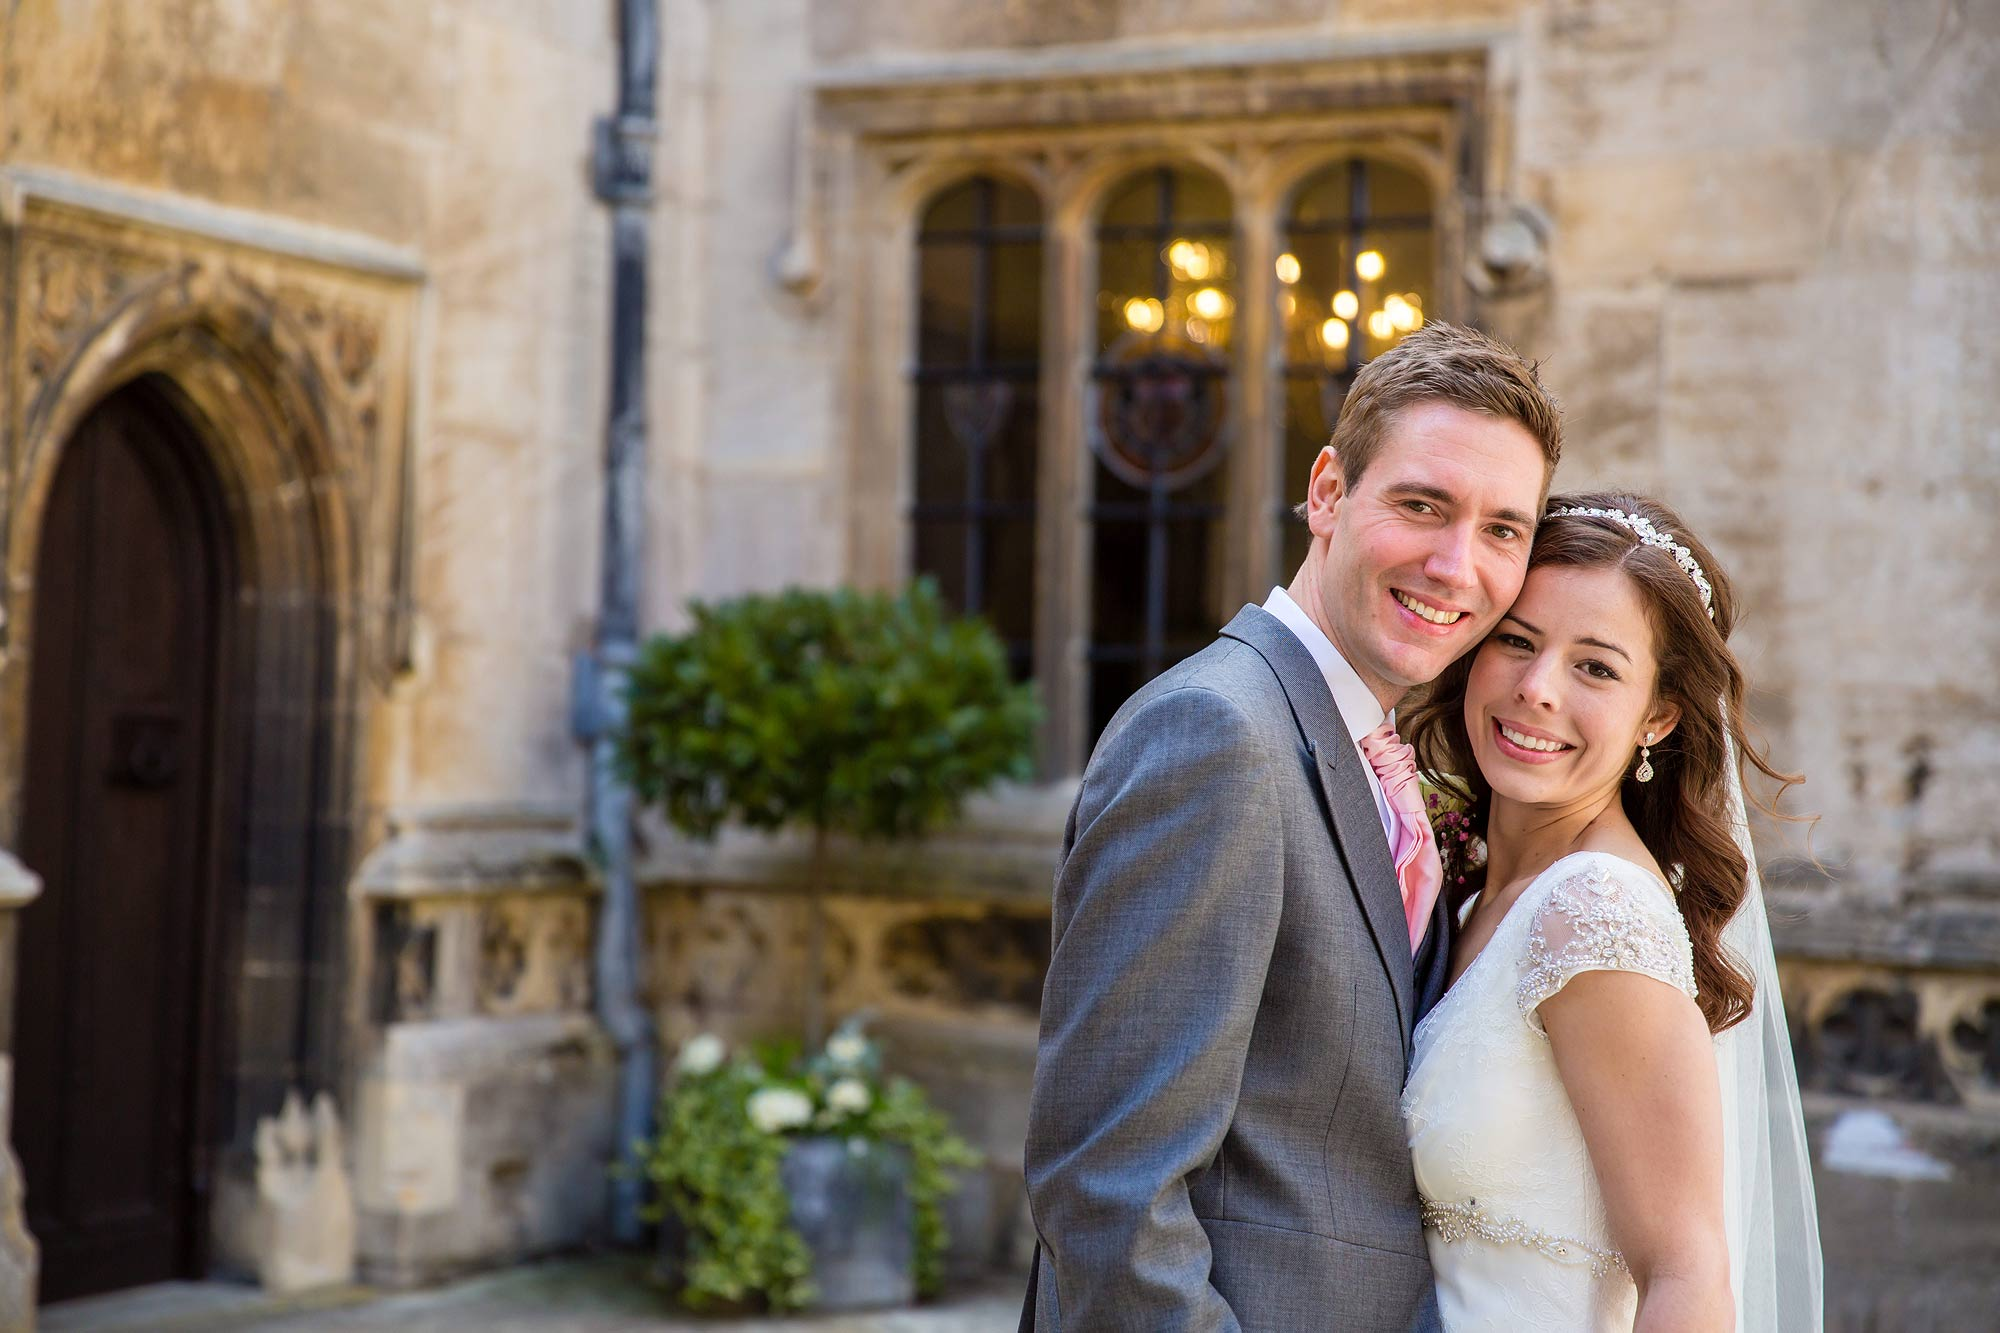 A close up picture of Amy and Jack in the courtyard at Hengrave Hall